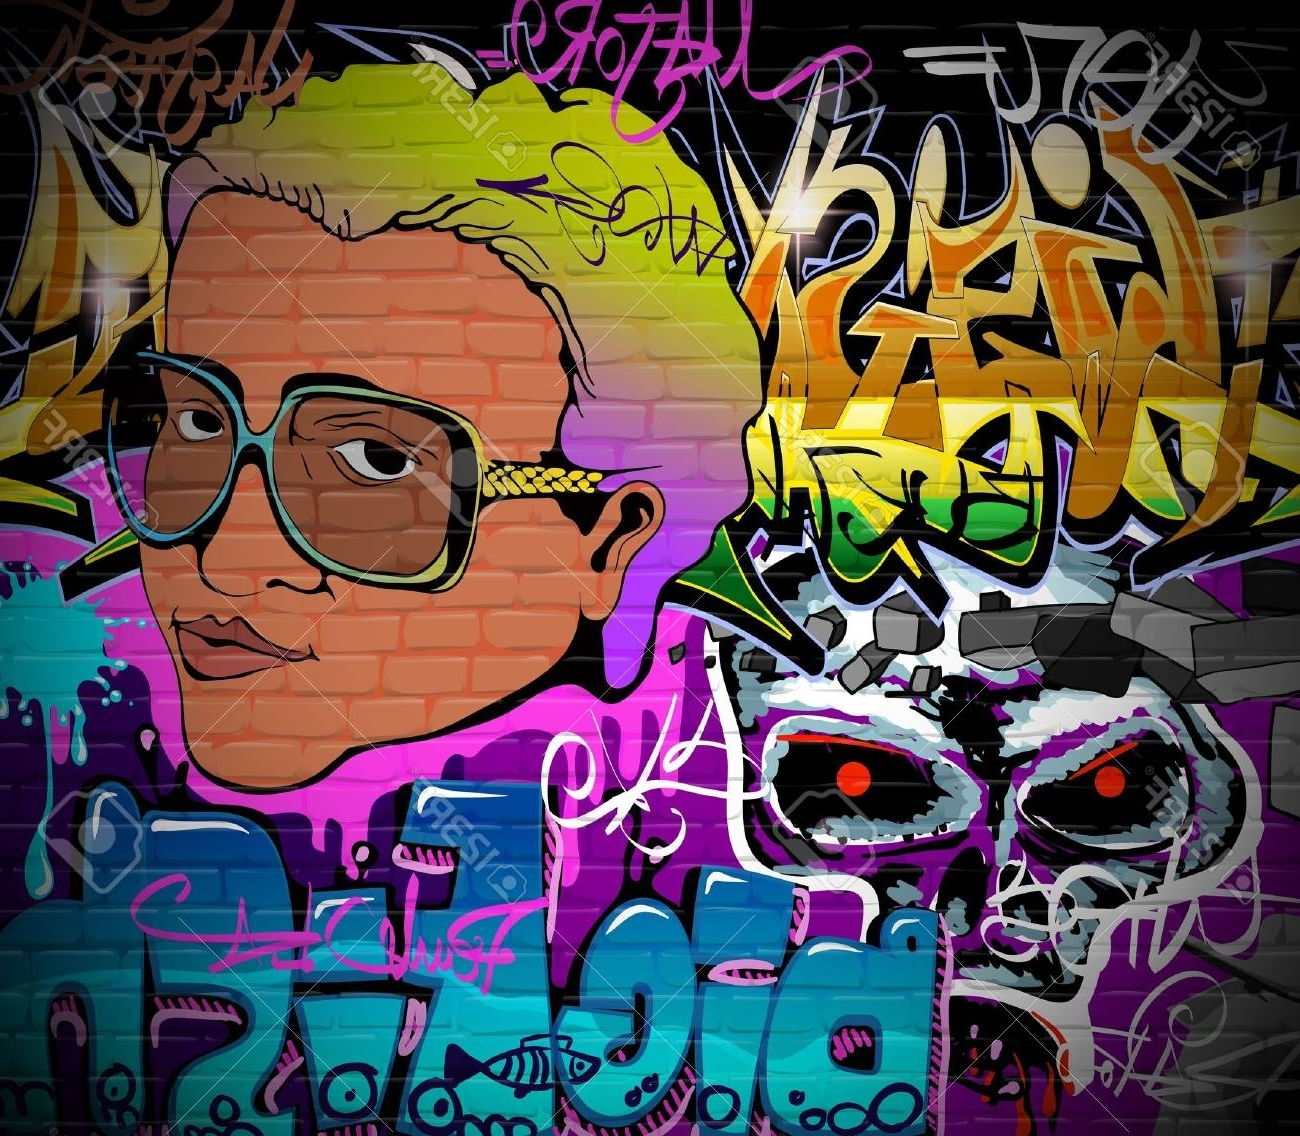 Graffiti Wall Urban Art Background Grunge Hip Hop Artistic Design Intended For Best And Newest Hip Hop Wall Art (View 4 of 15)